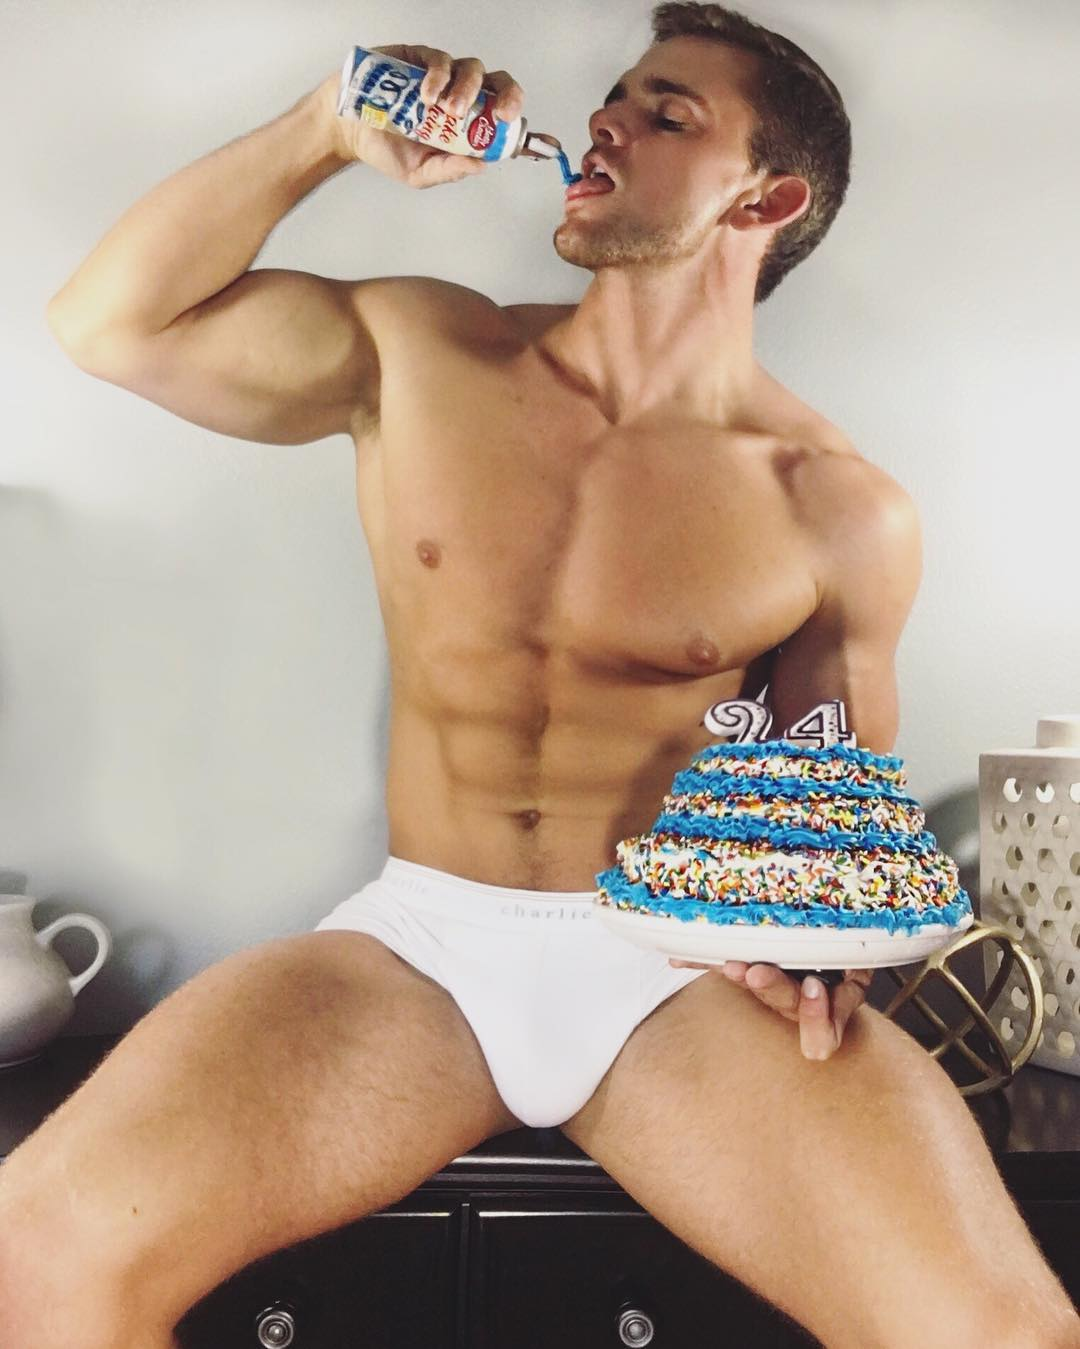 Hottie of The Day: Instagram Hunk Keegan Whicker's Sexiest Photos